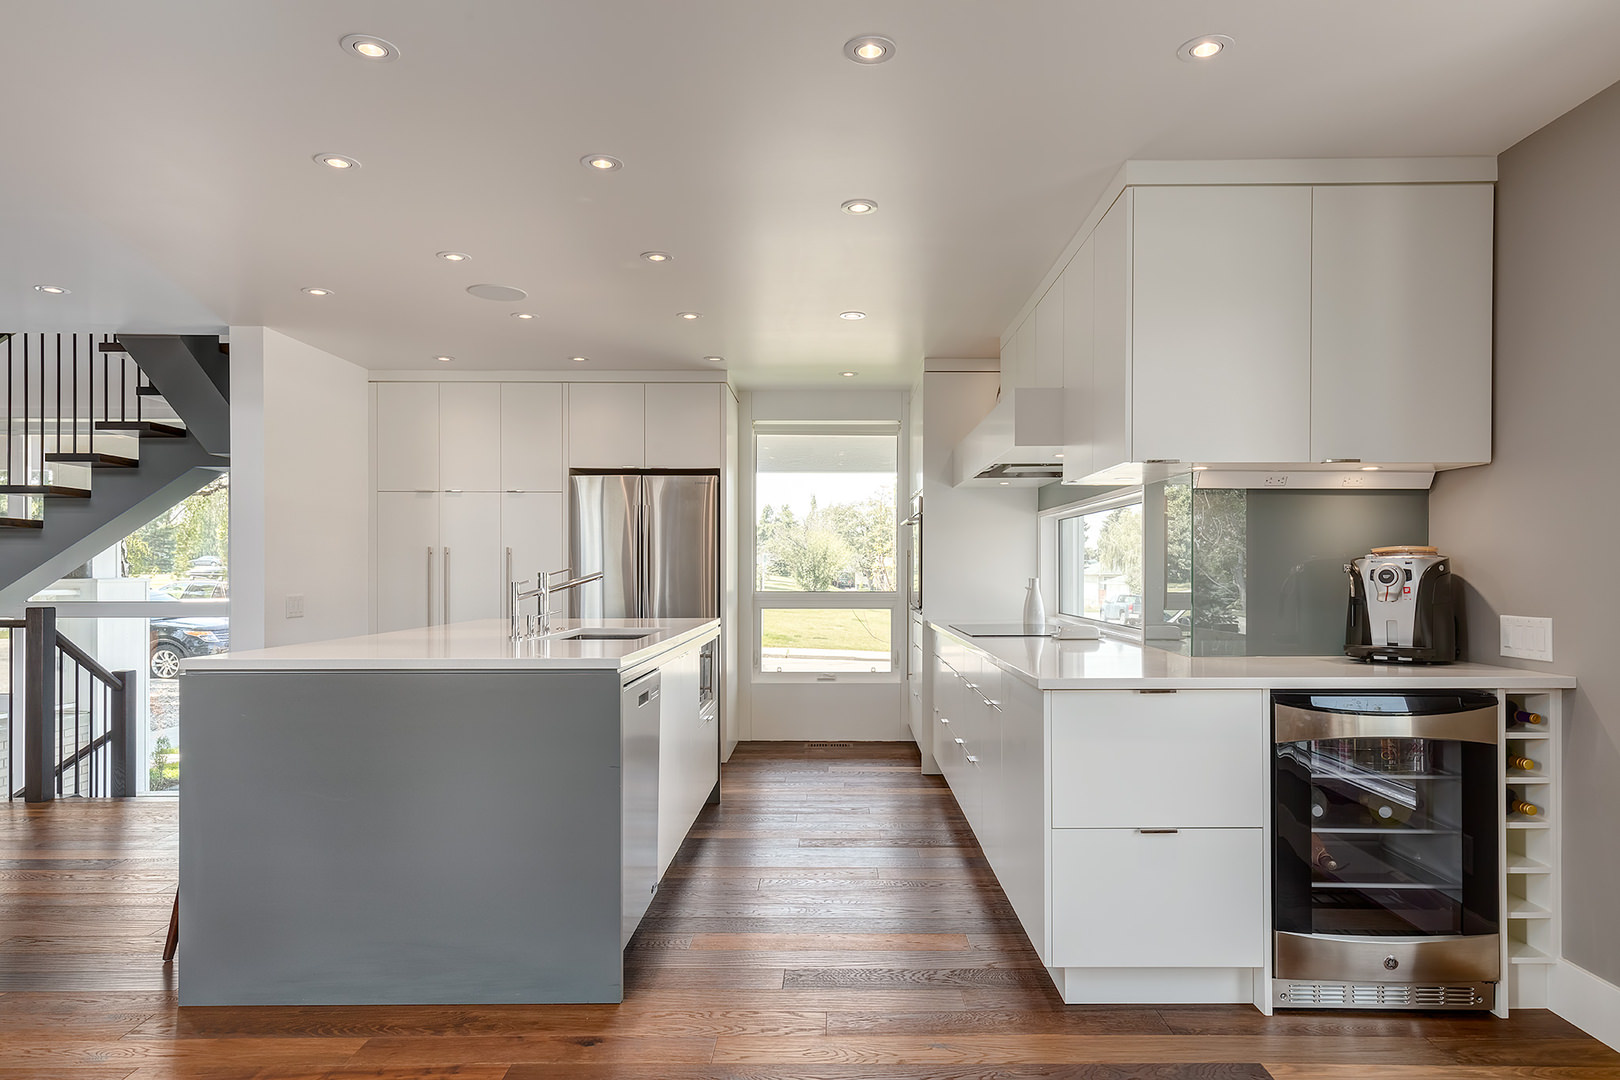 A contemporary designed kitchen that is very minimalist on its own version, no other clutters and decorative accents added aside from the white colored vanities, wooden floor and glass window. Everything is concealed in functional storage cabinets on the floor and ceiling.